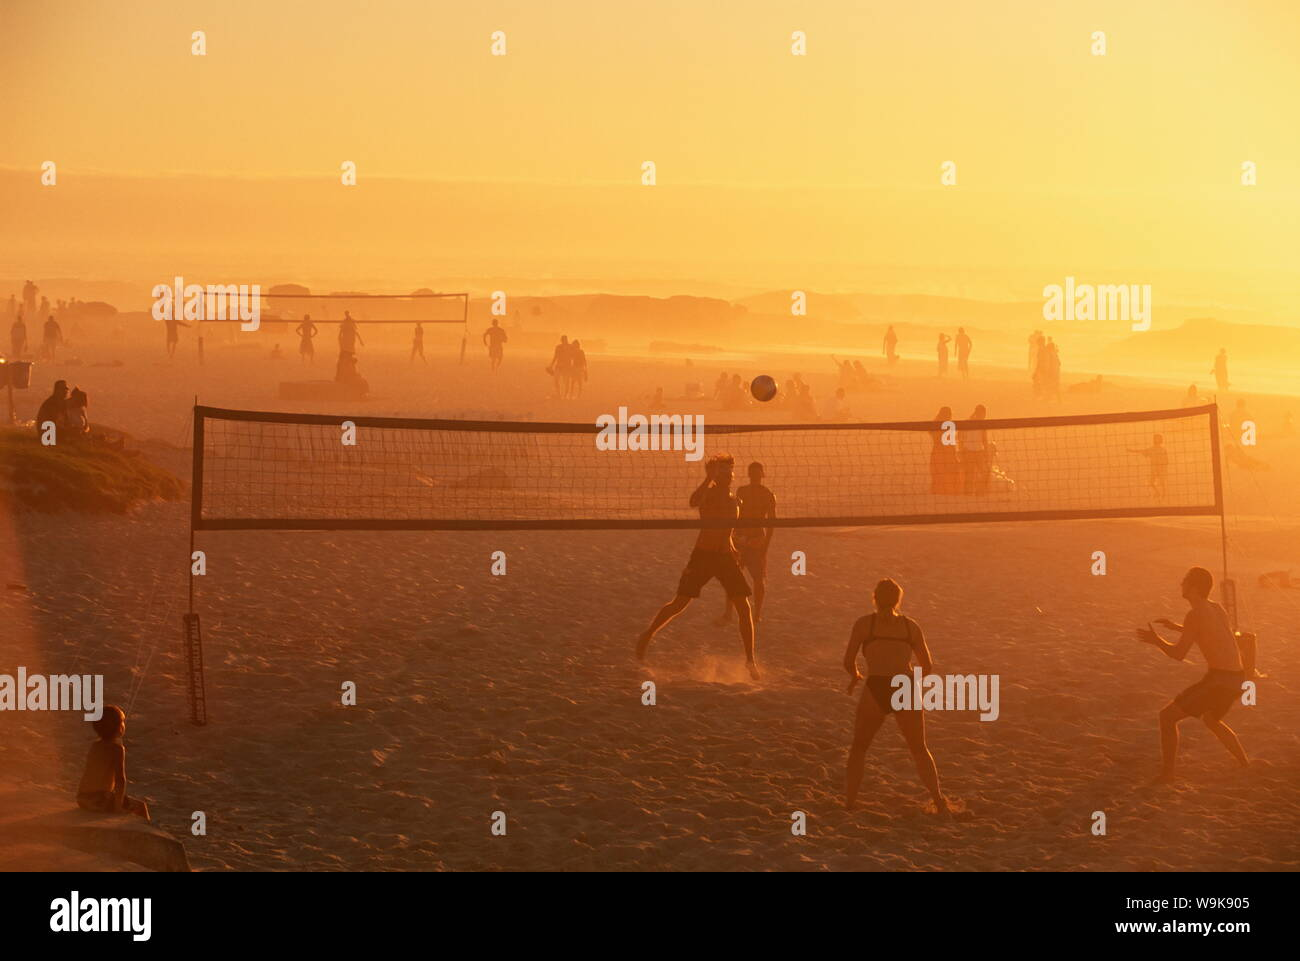 Beach volleyball game, late afternoon, Camps Bay, Cape Town, South Africa, Africa Stock Photo